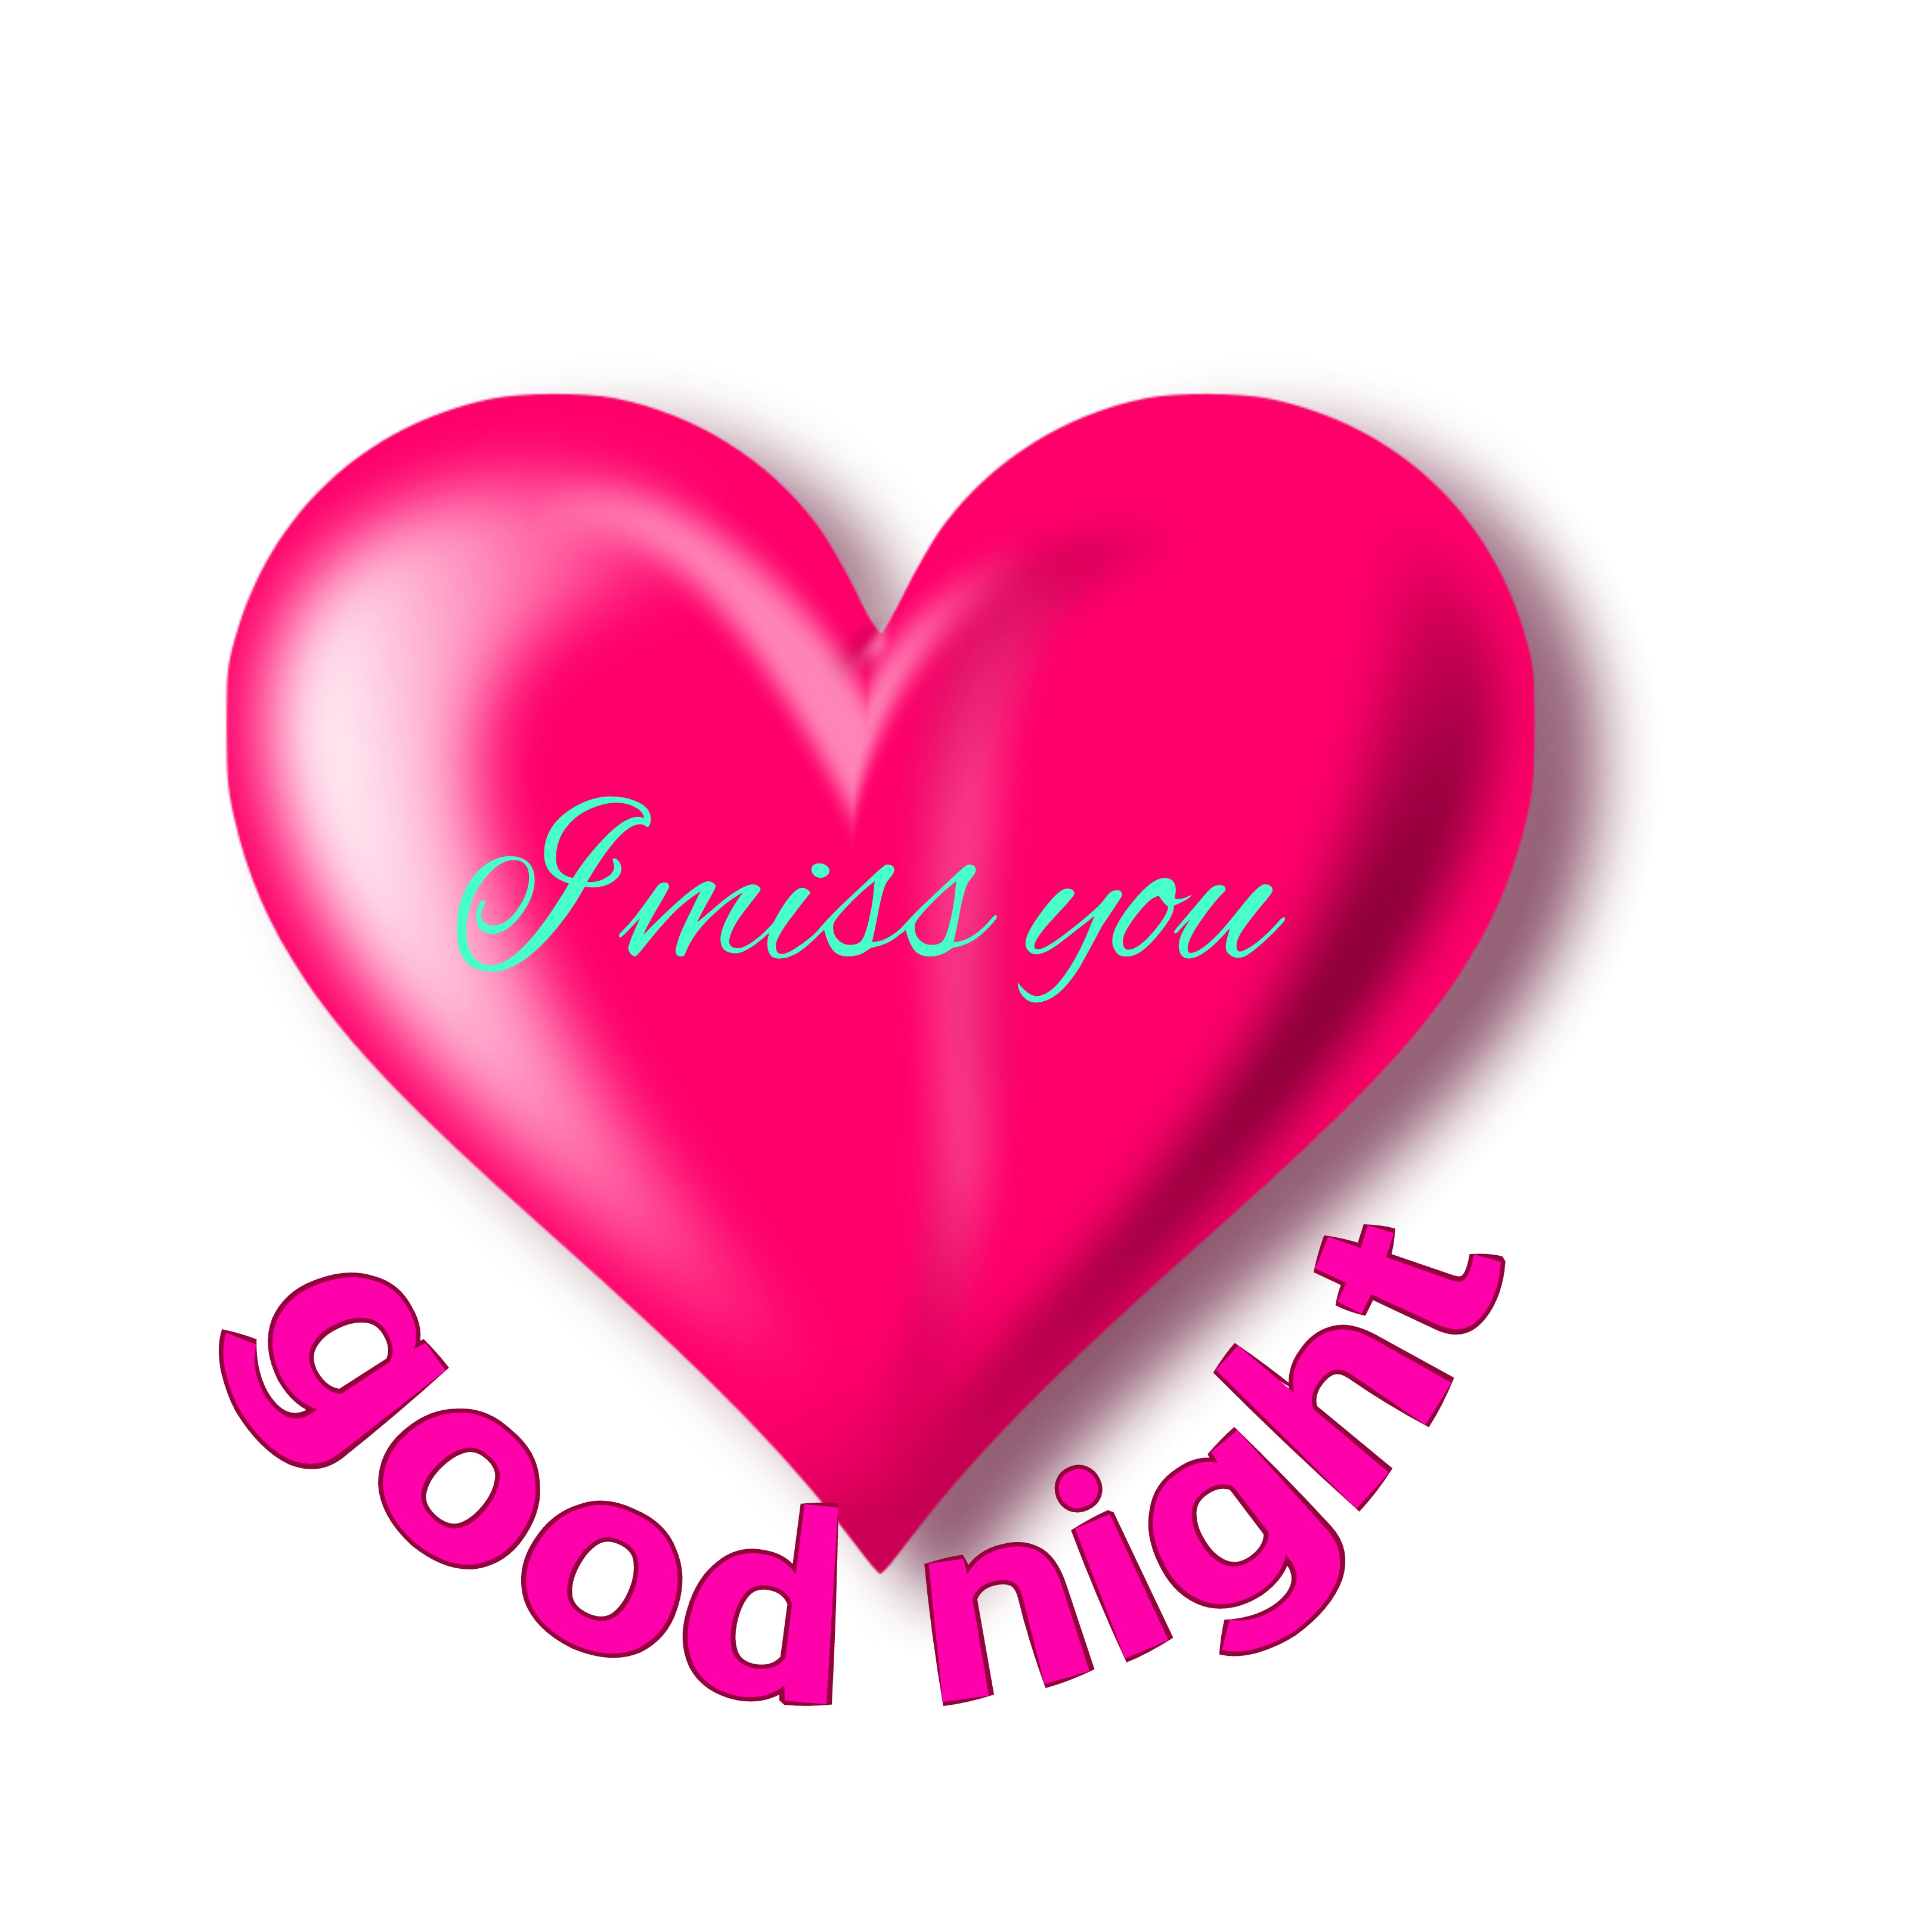 Good Night Images Wallpaper Pic Download & Share